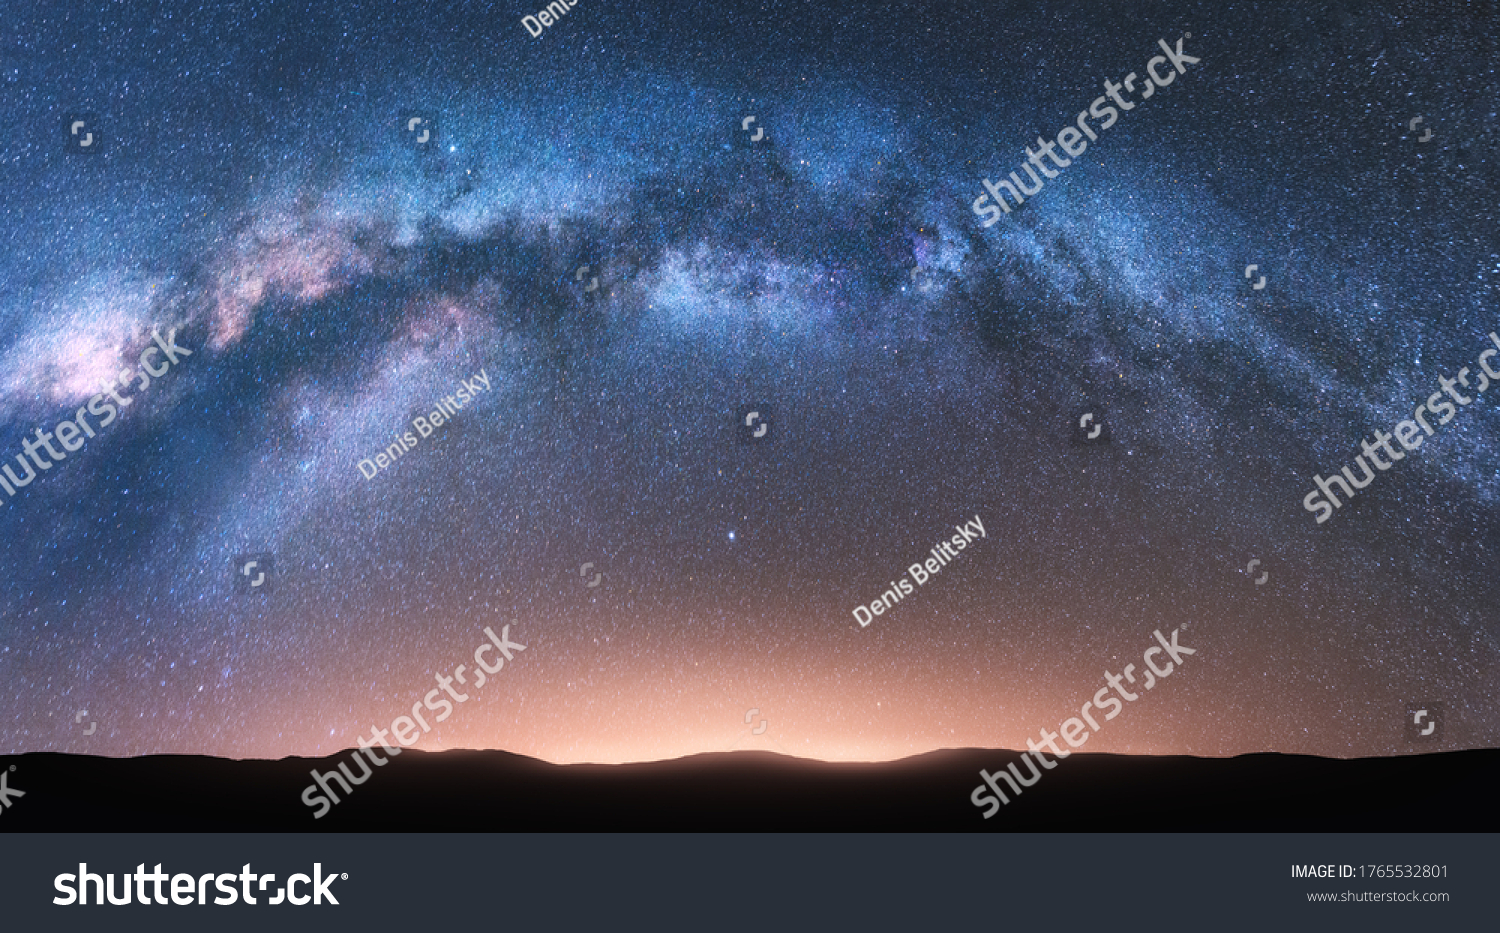 Milky Way arch. Fantastic night landscape with bright arched milky way, sky with stars, yellow sunlight and hills. Beautiful scene with universe. Space background with starry sky. Galaxy and nature #1765532801